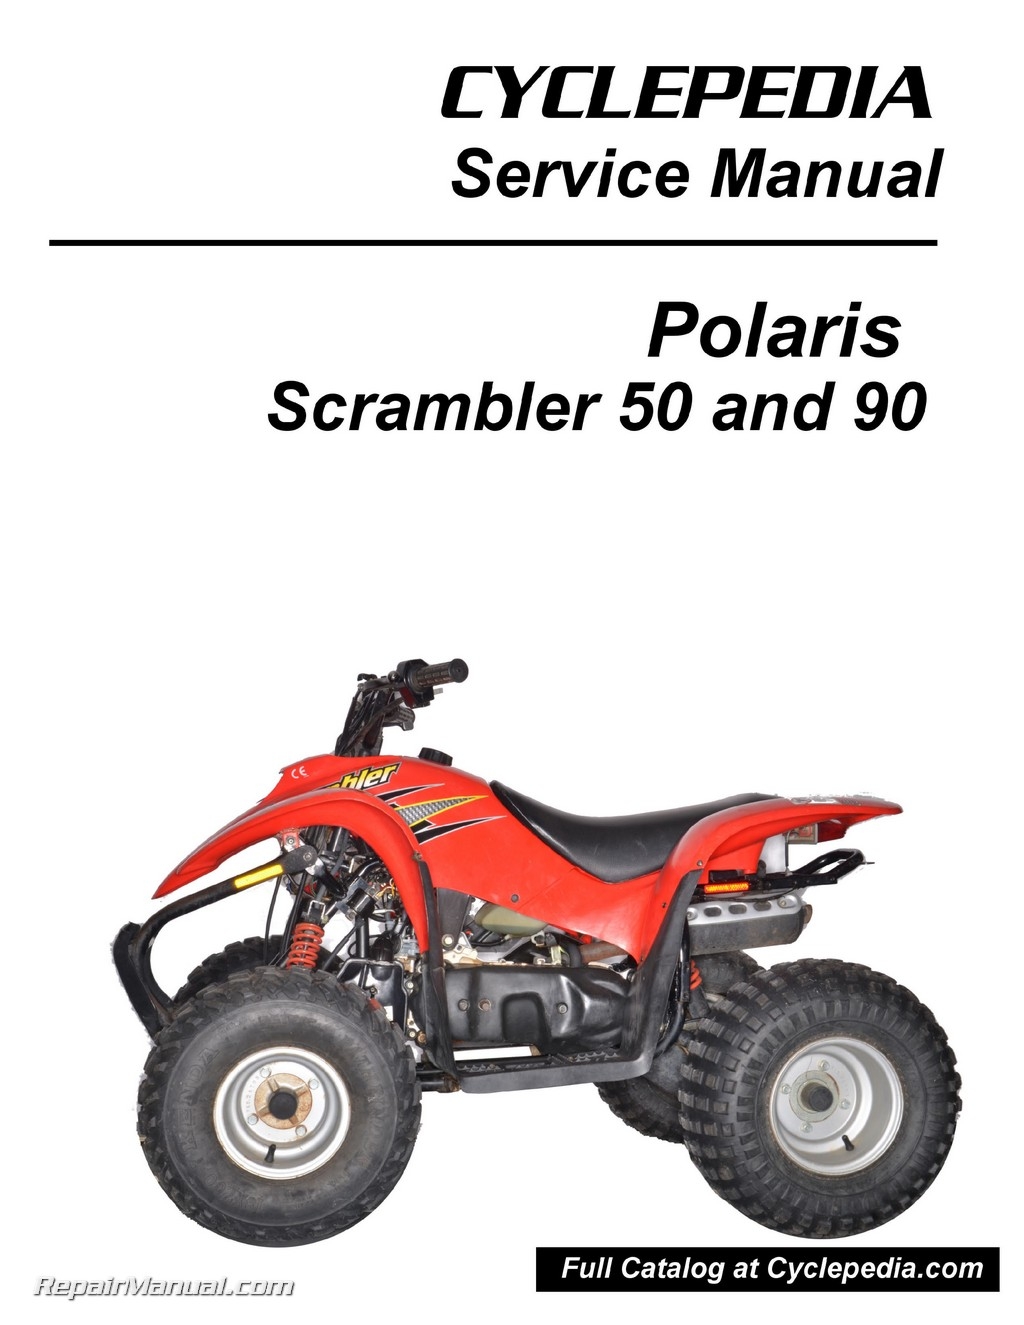 polaris 50cc 90cc scrambler atv print service manual by cyclepedia rh repairmanual com 2006 Polaris Predator 50 2004 polaris predator 500 service manual